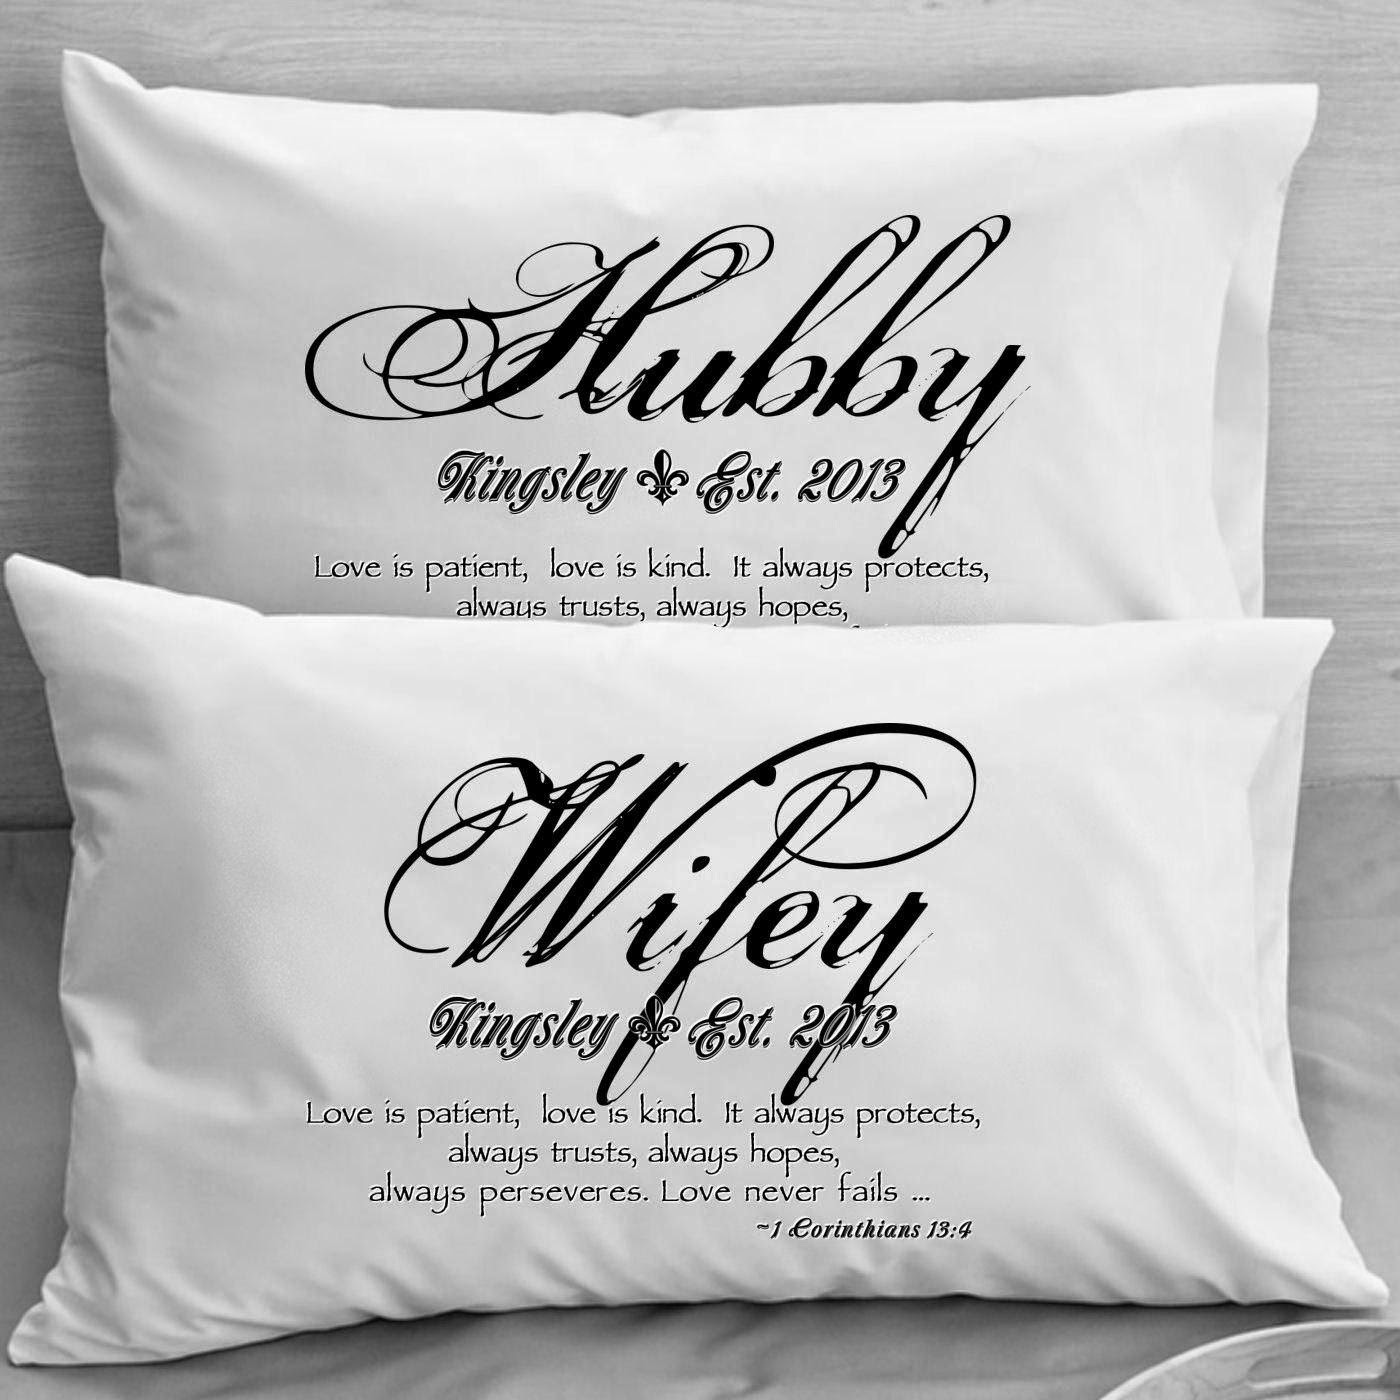 id e cadeau anniversaire mariage 1 an invitation mariage. Black Bedroom Furniture Sets. Home Design Ideas